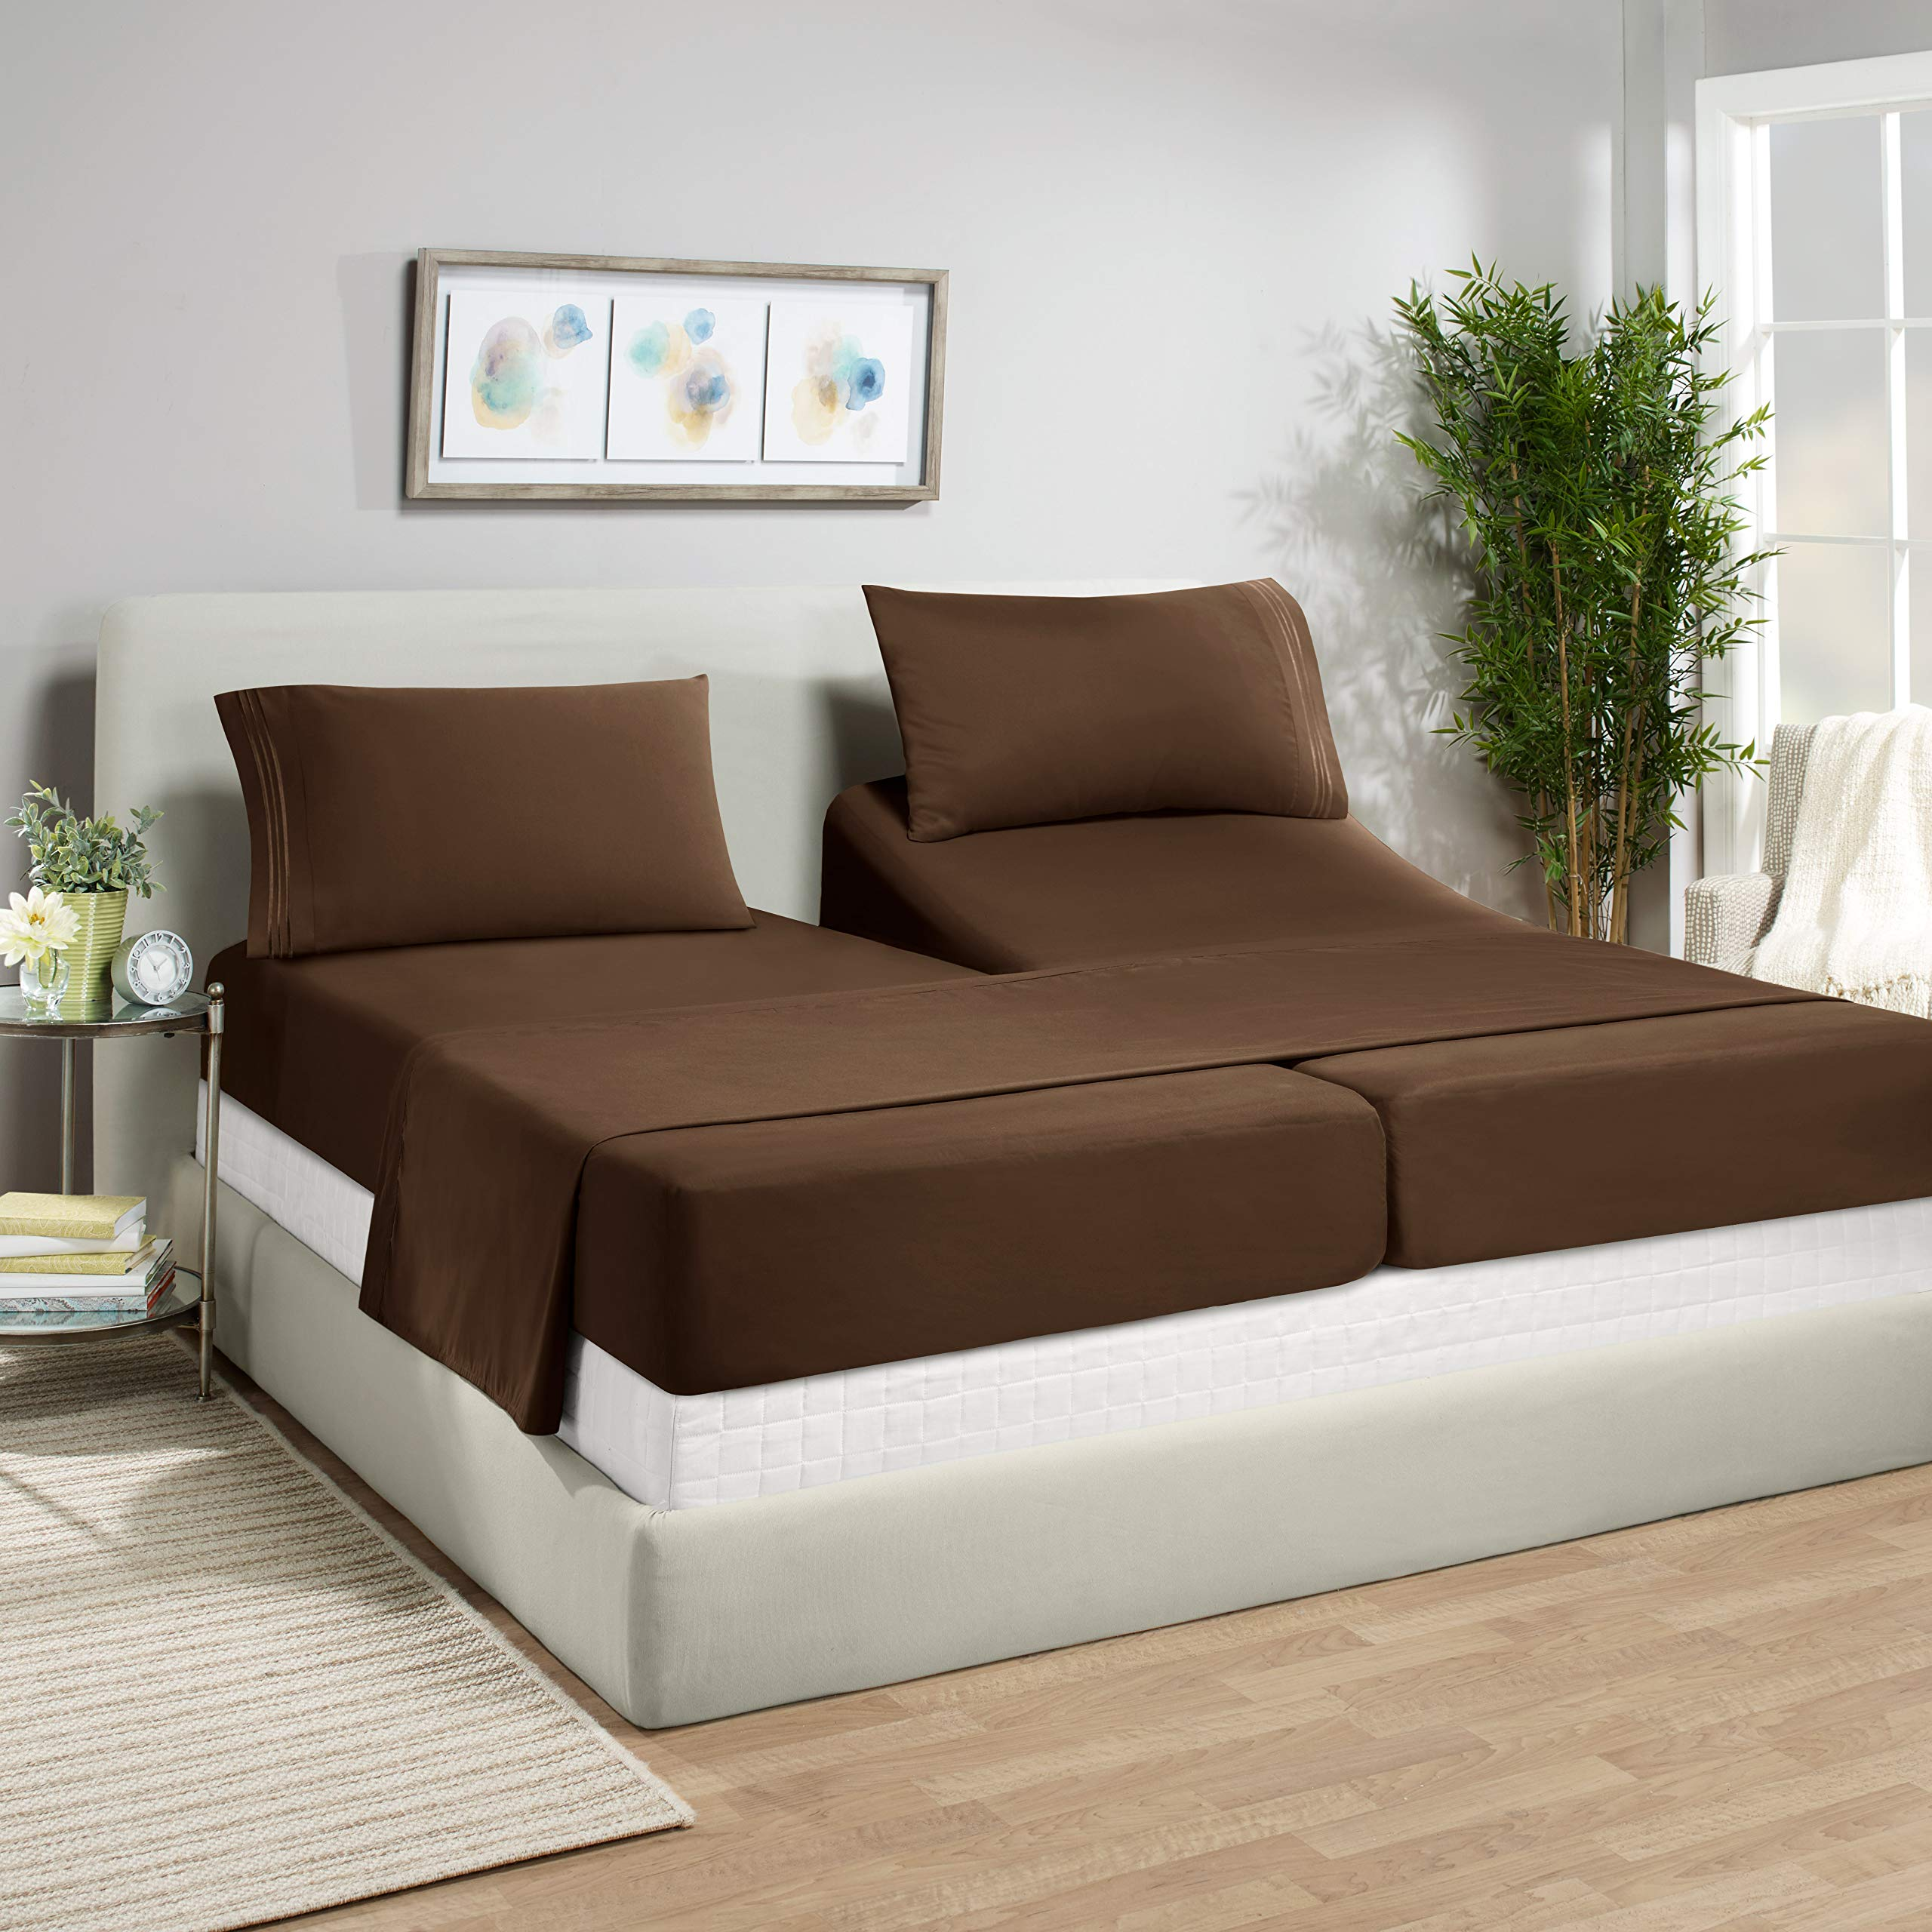 """Empyrean Bedding 14"""" - 16"""" Deep Pocket Fitted Sheet 5 Piece Set - Super Soft Double Brushed Microfiber Top Sheet - Wrinkle Free 2 Fitted Bed Sheets, 1 Flat Sheet and 2 Pillow Cases - Split King, Brown"""